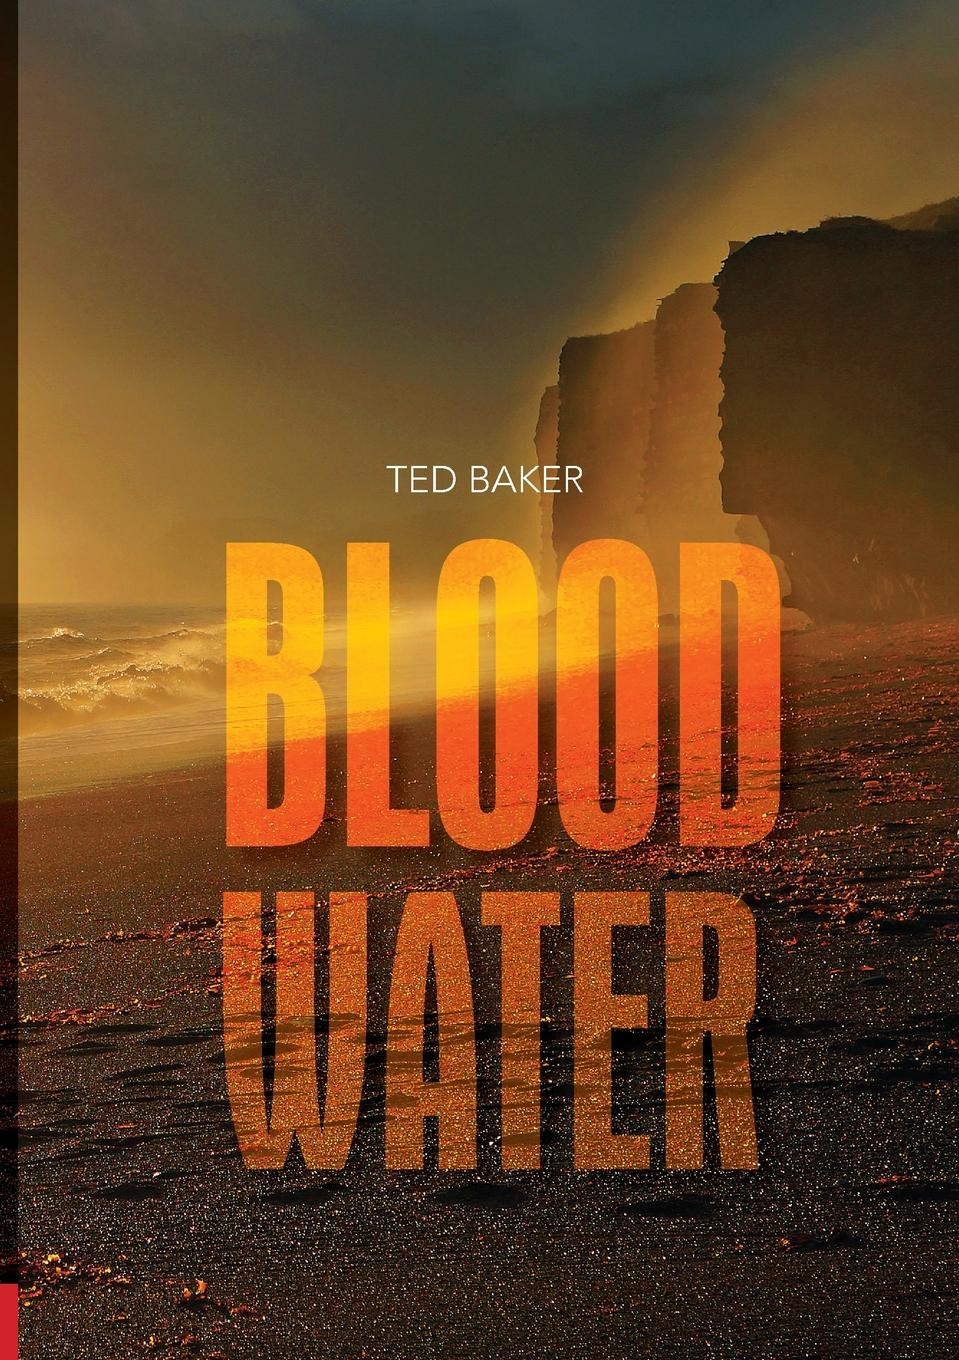 Ted Baker Blood Water